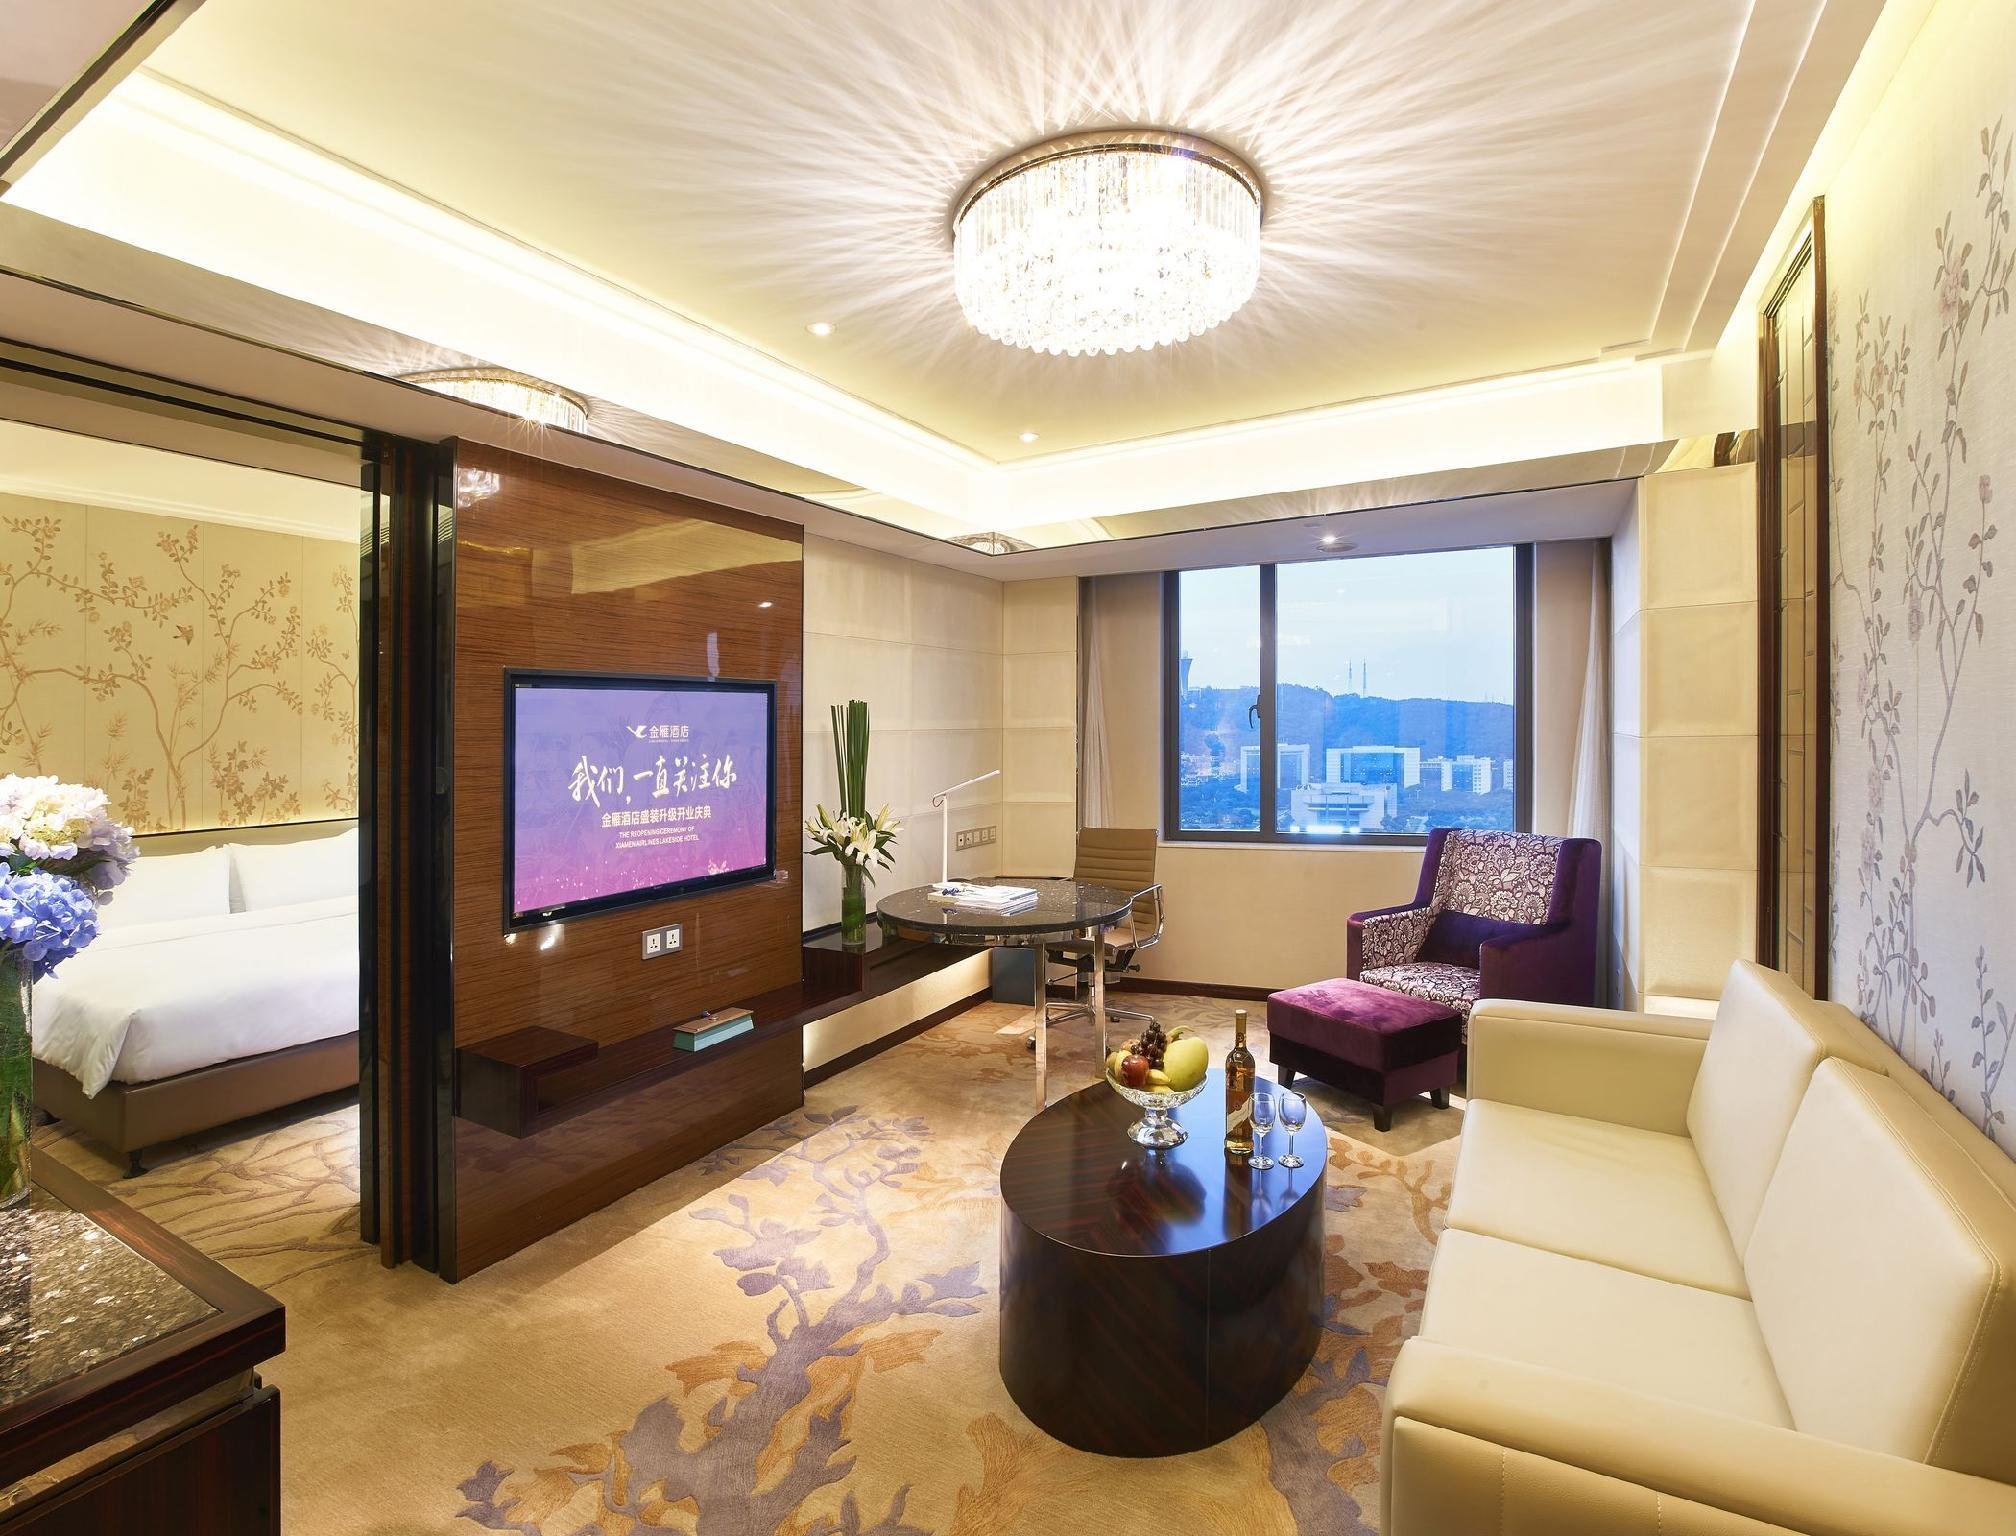 Suite dengan Pemandangan Danau (Lake View Suite)